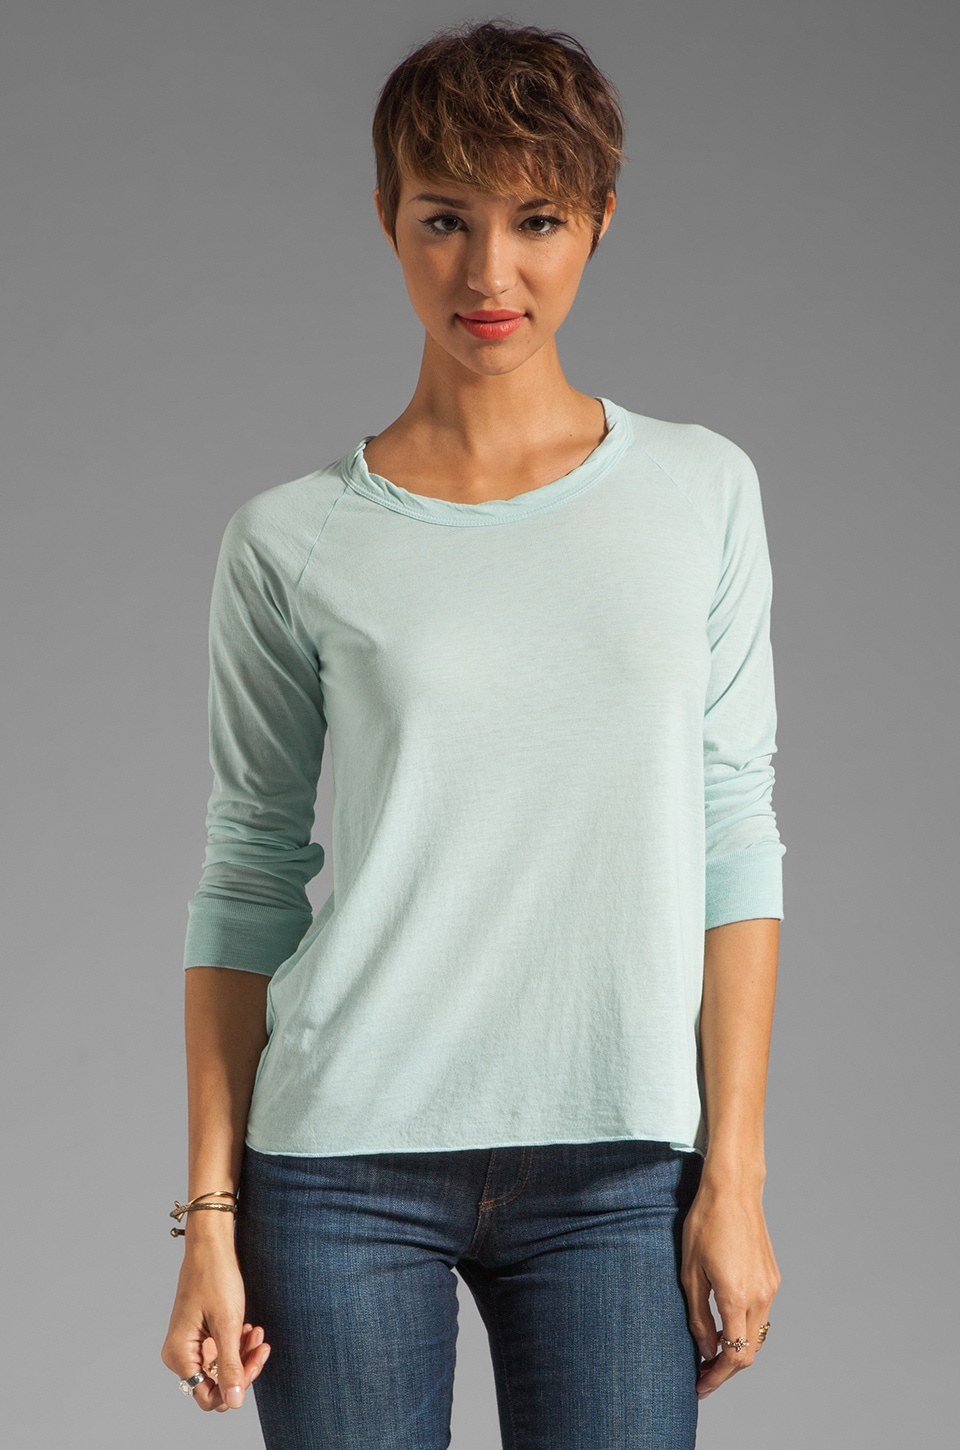 James Perse Soft Baseball Tee in Ocean Spray